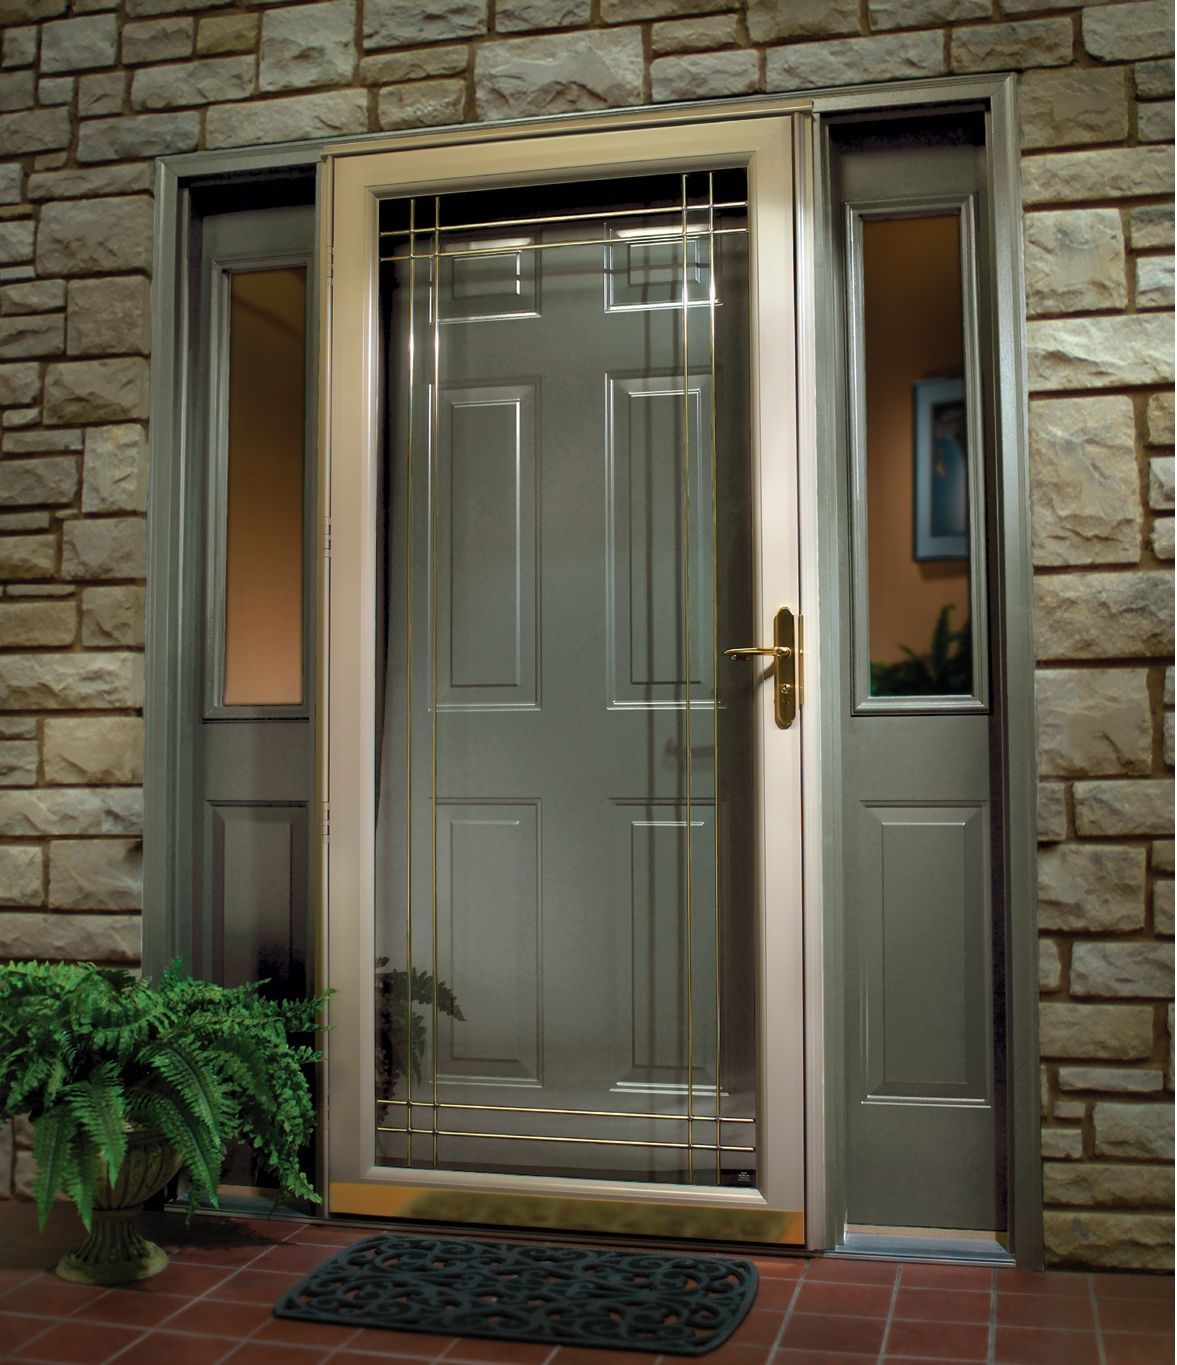 Exterior doors for homes front door ideas front entry for Entry door with screen